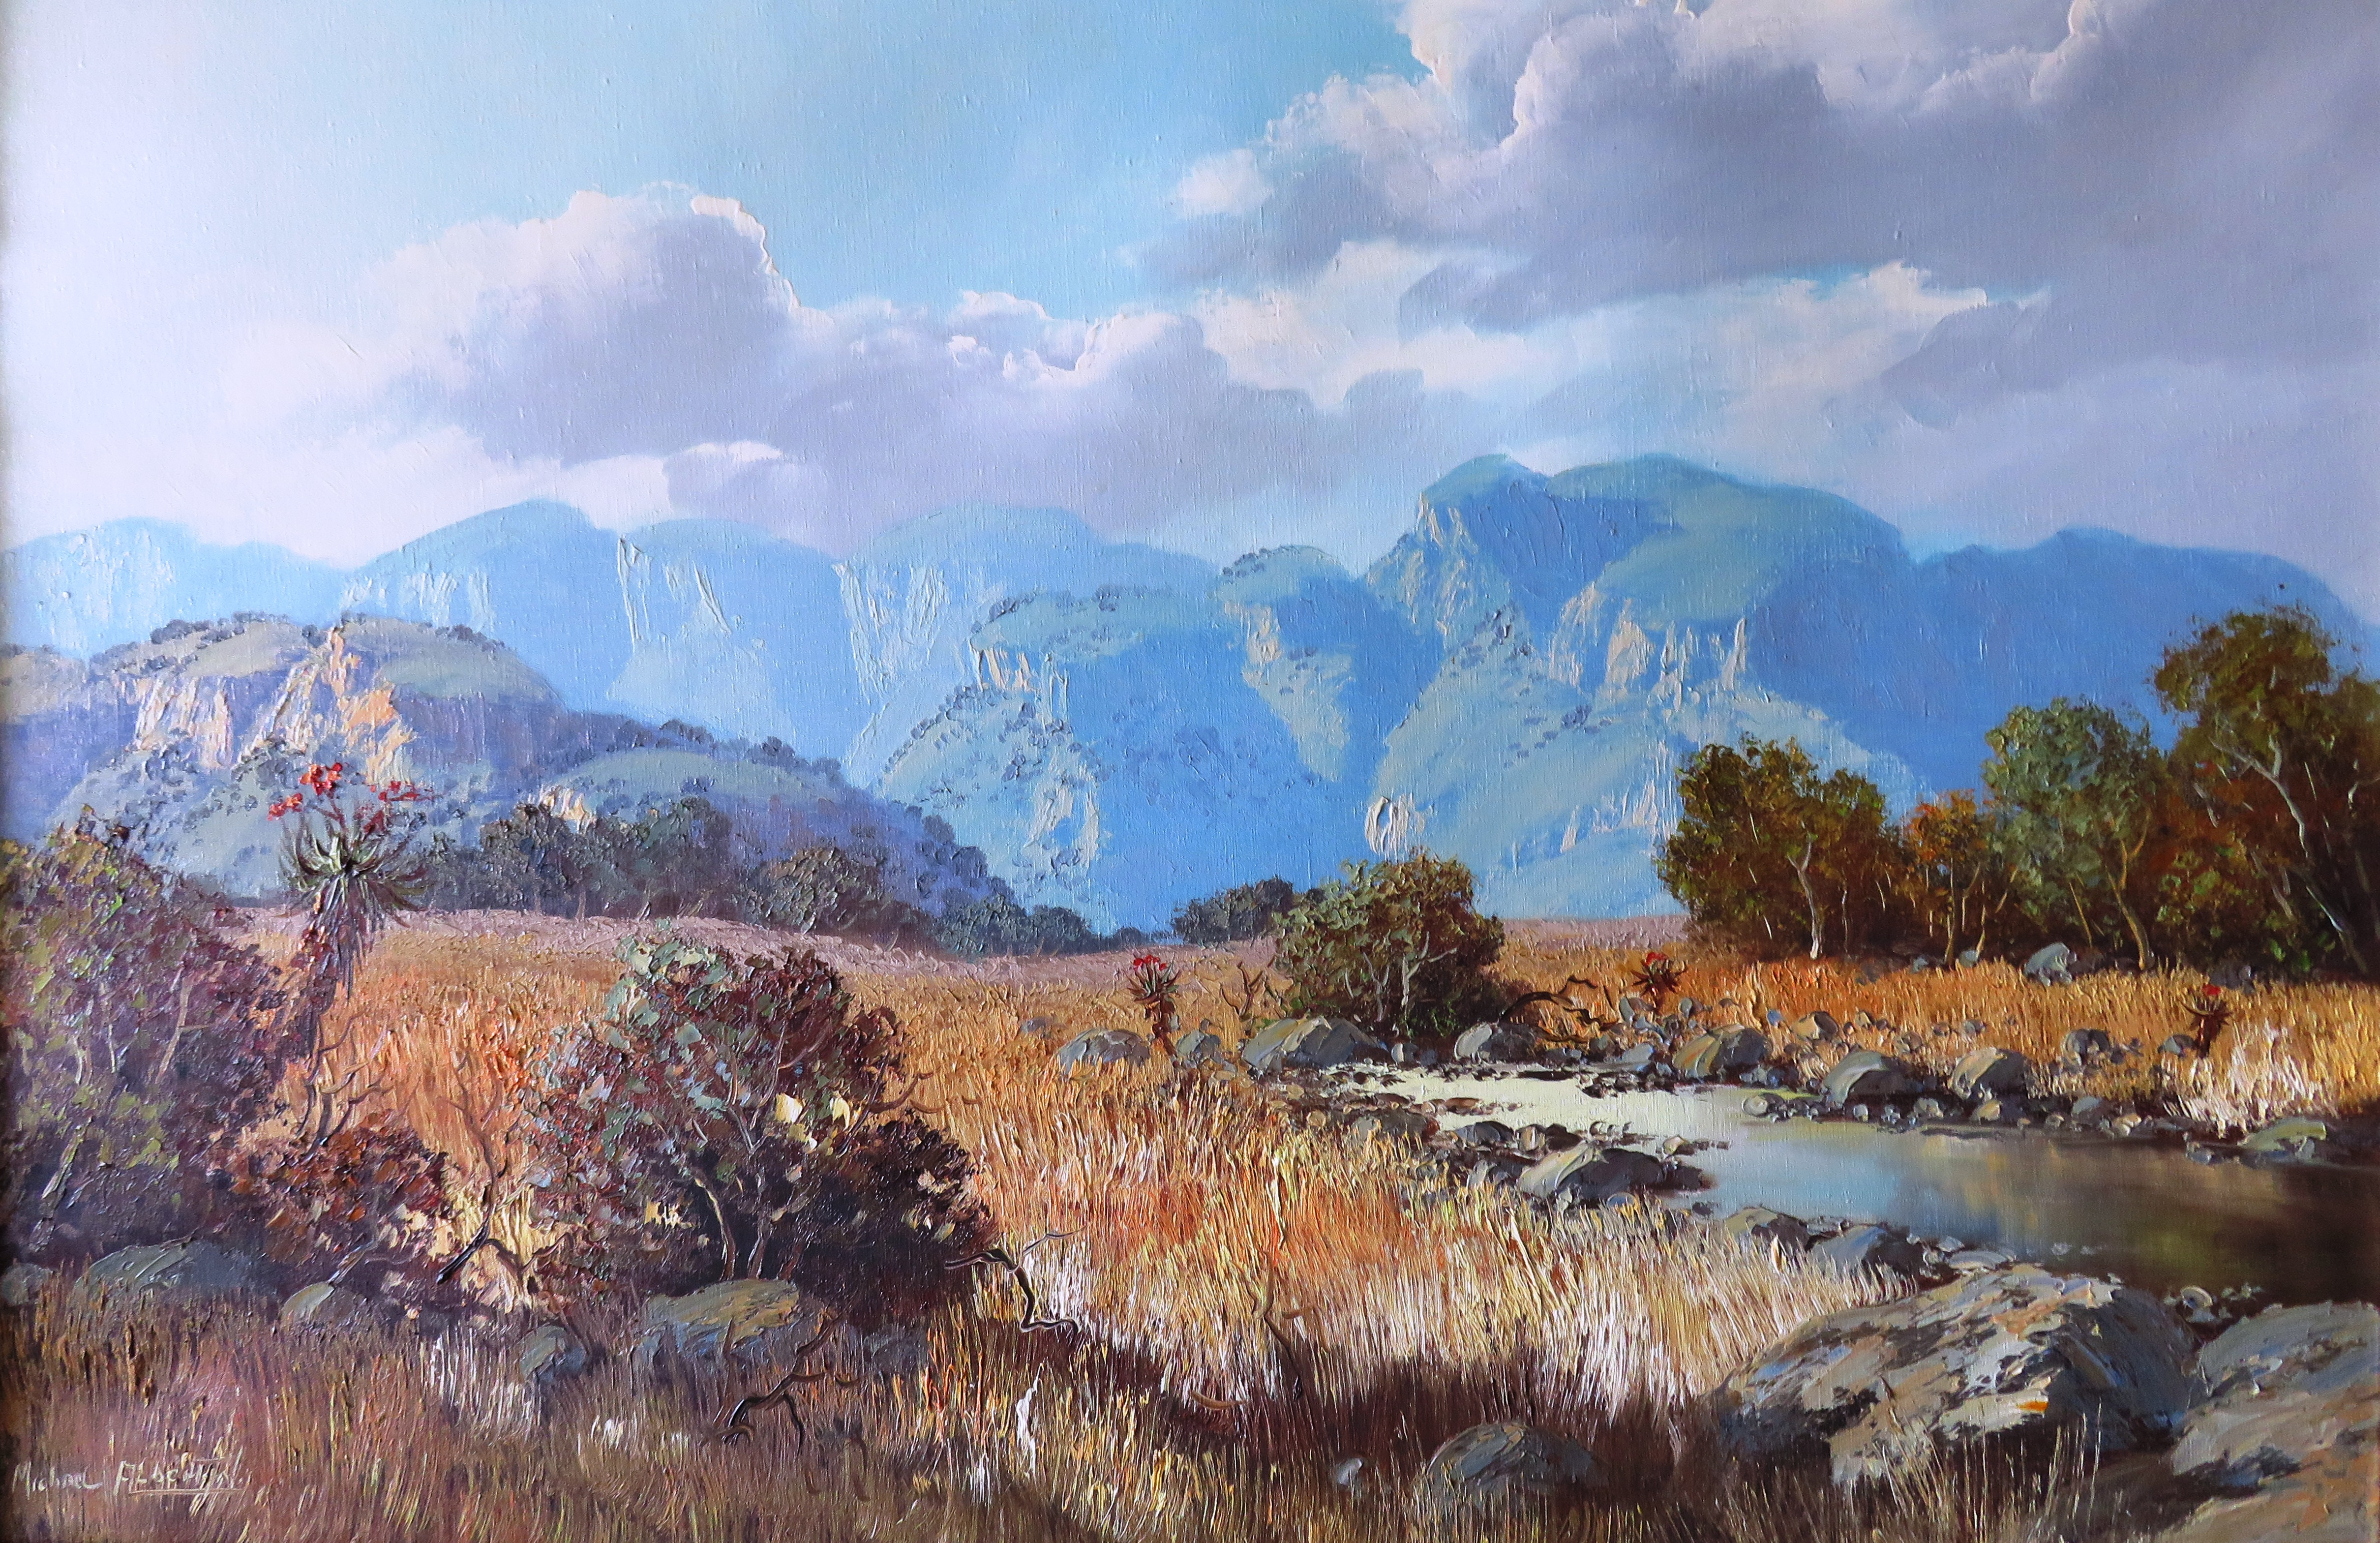 artist, oil painting , fine art, artist, old masters, investment, oil painting artist, south African artist, south African, ou meester, fyn kuns, belegging, crouse art gallery, crouse, crouse art dealer, best price for Michael Albertyn, Michael Albertyn for sale, Michael Albertyn art, Michael Albertyn artist, Michael Albertyn,